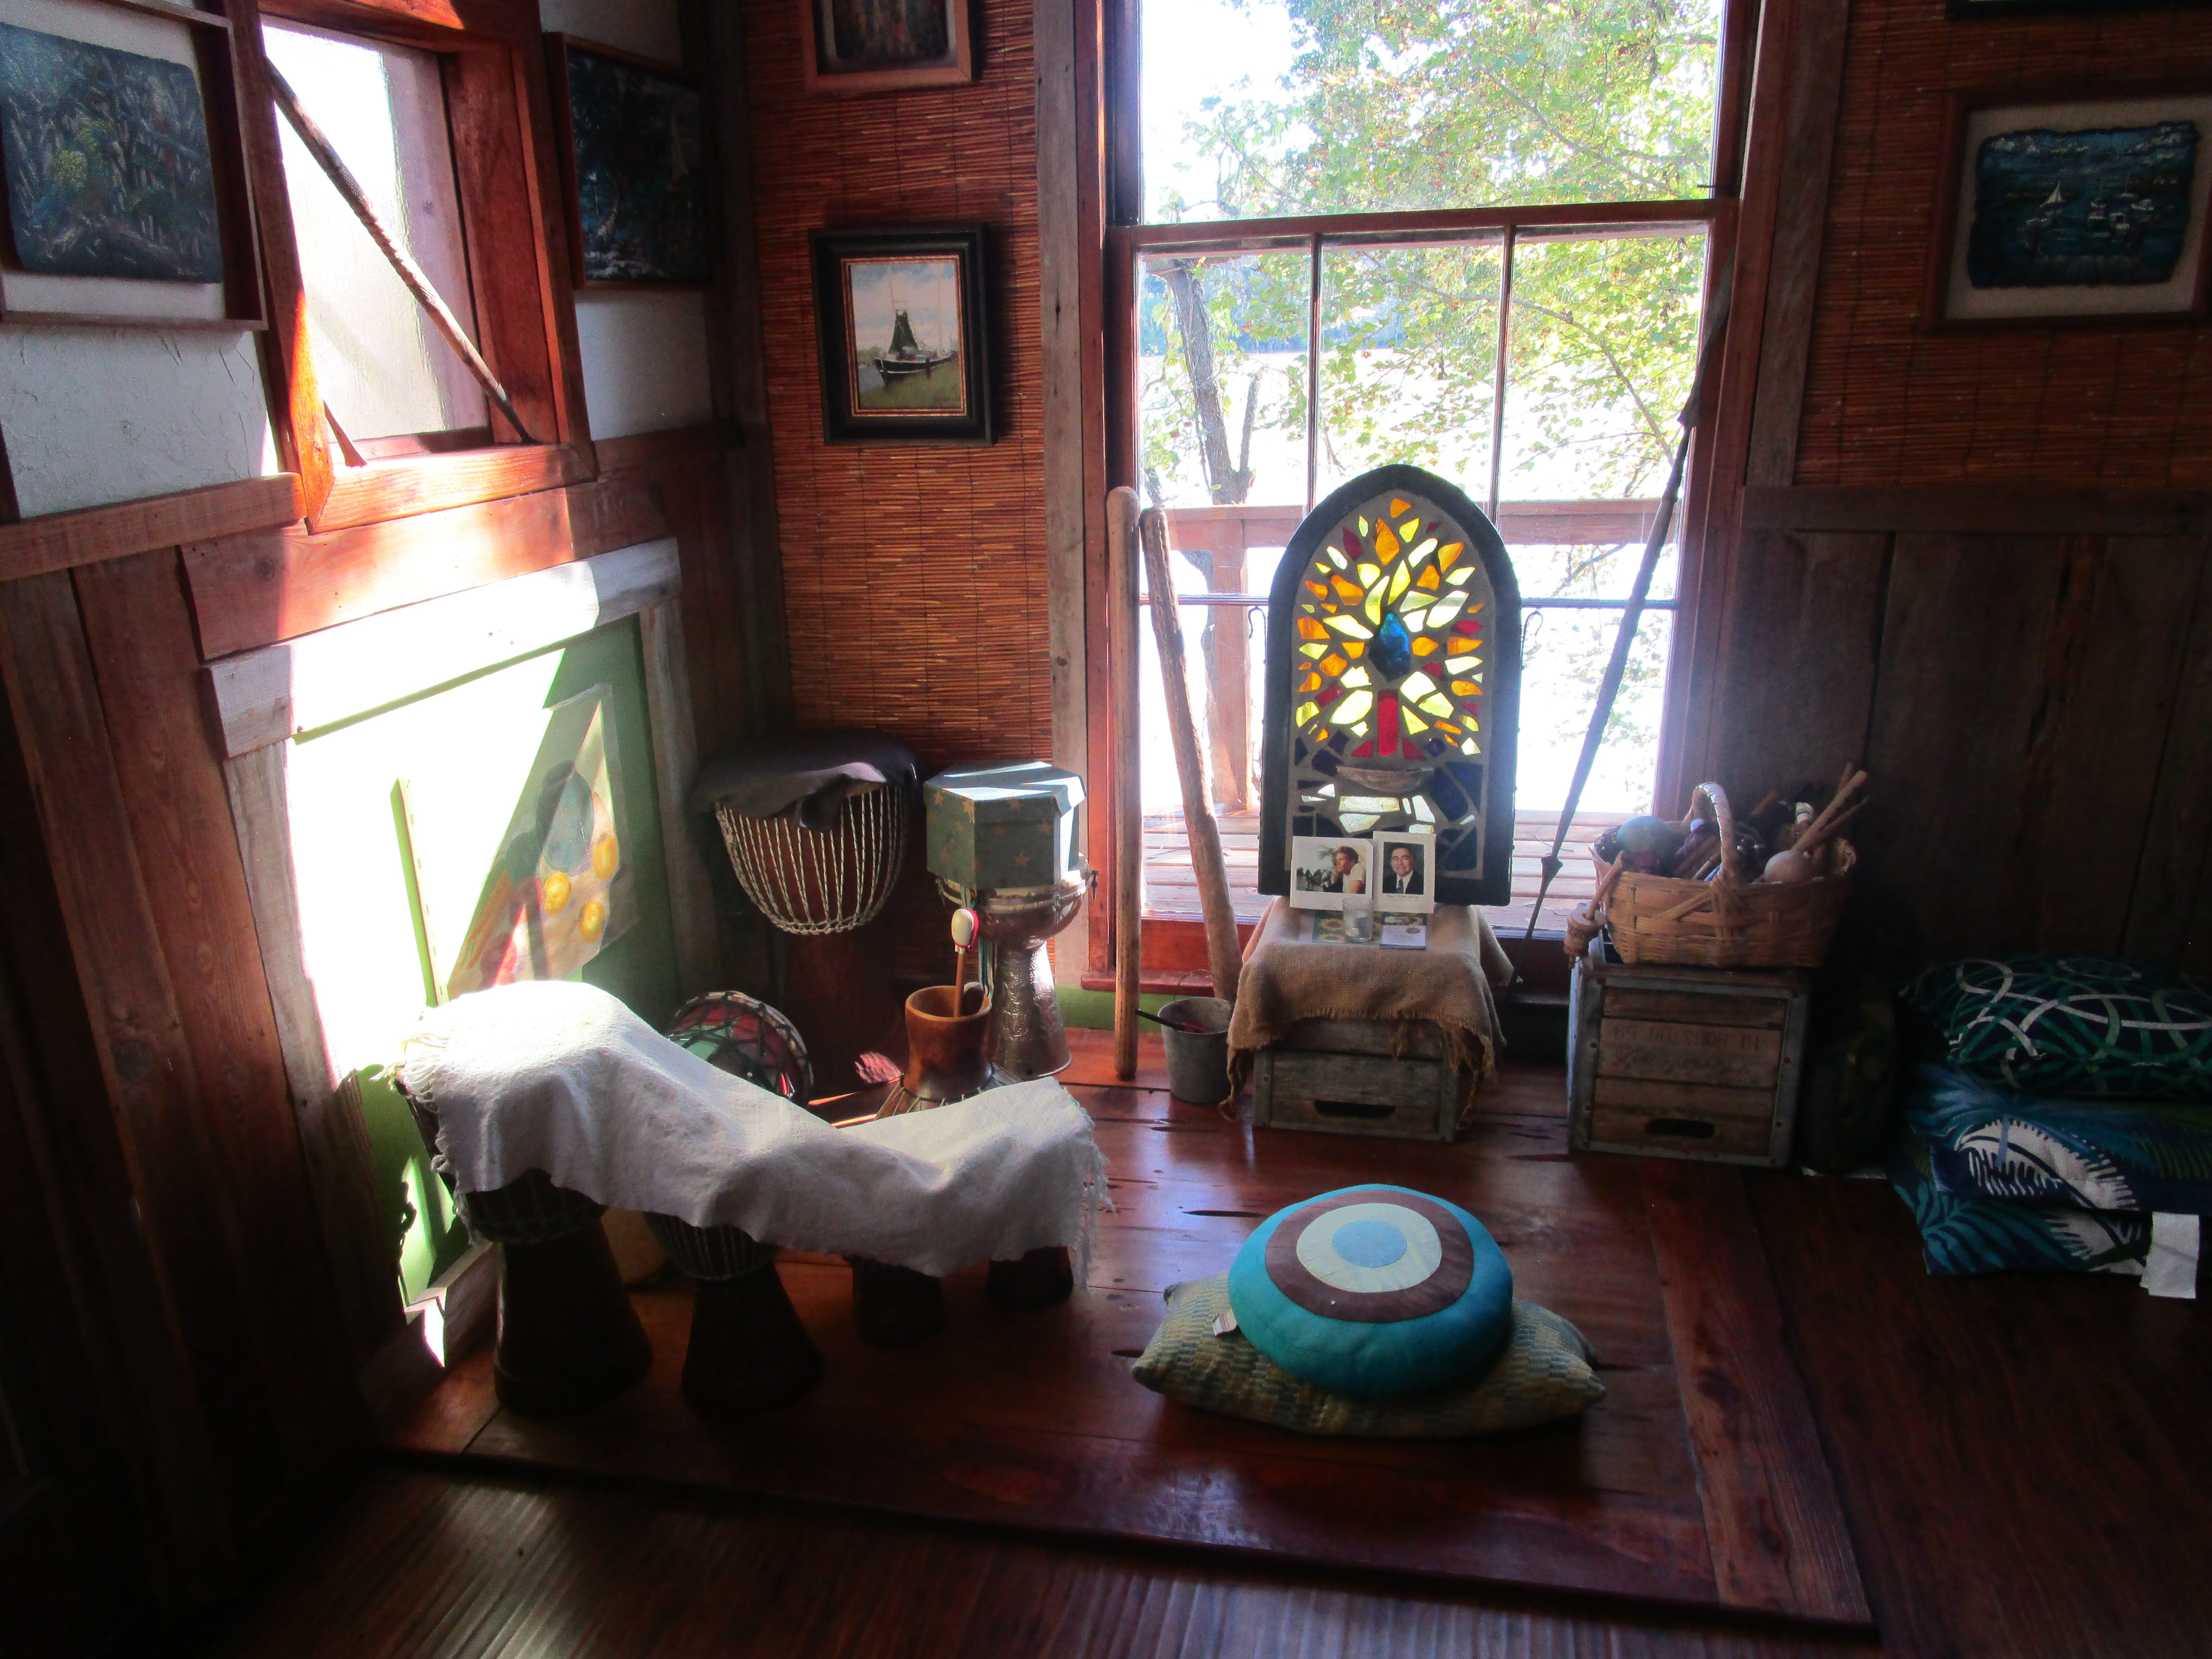 A spiritual space in the Whitehurst home